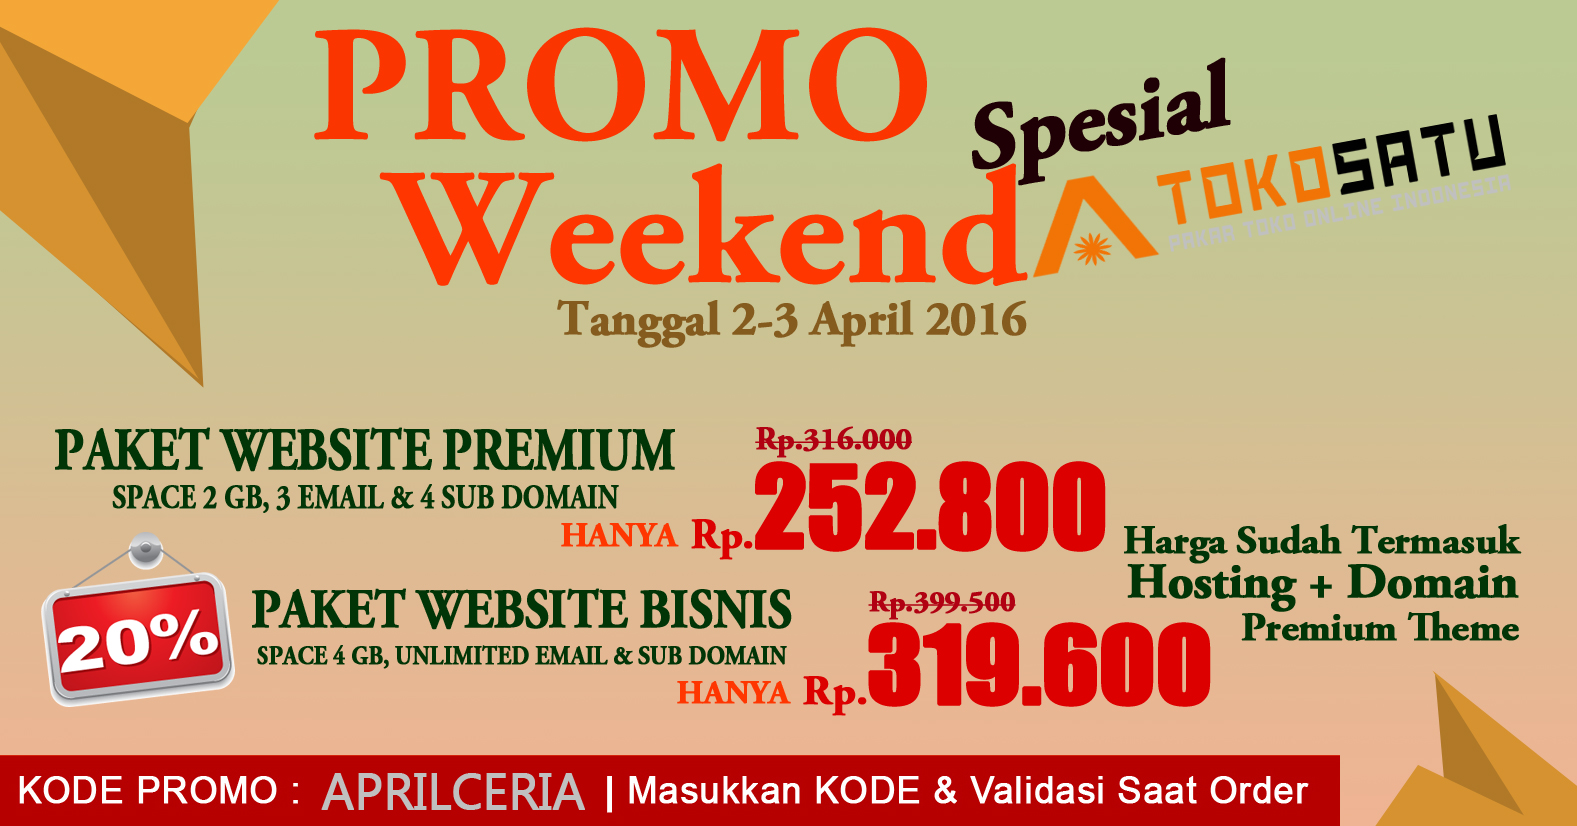 Promo Spesial Weekend APRILCERIA TokoSatu 2-3 April 2016